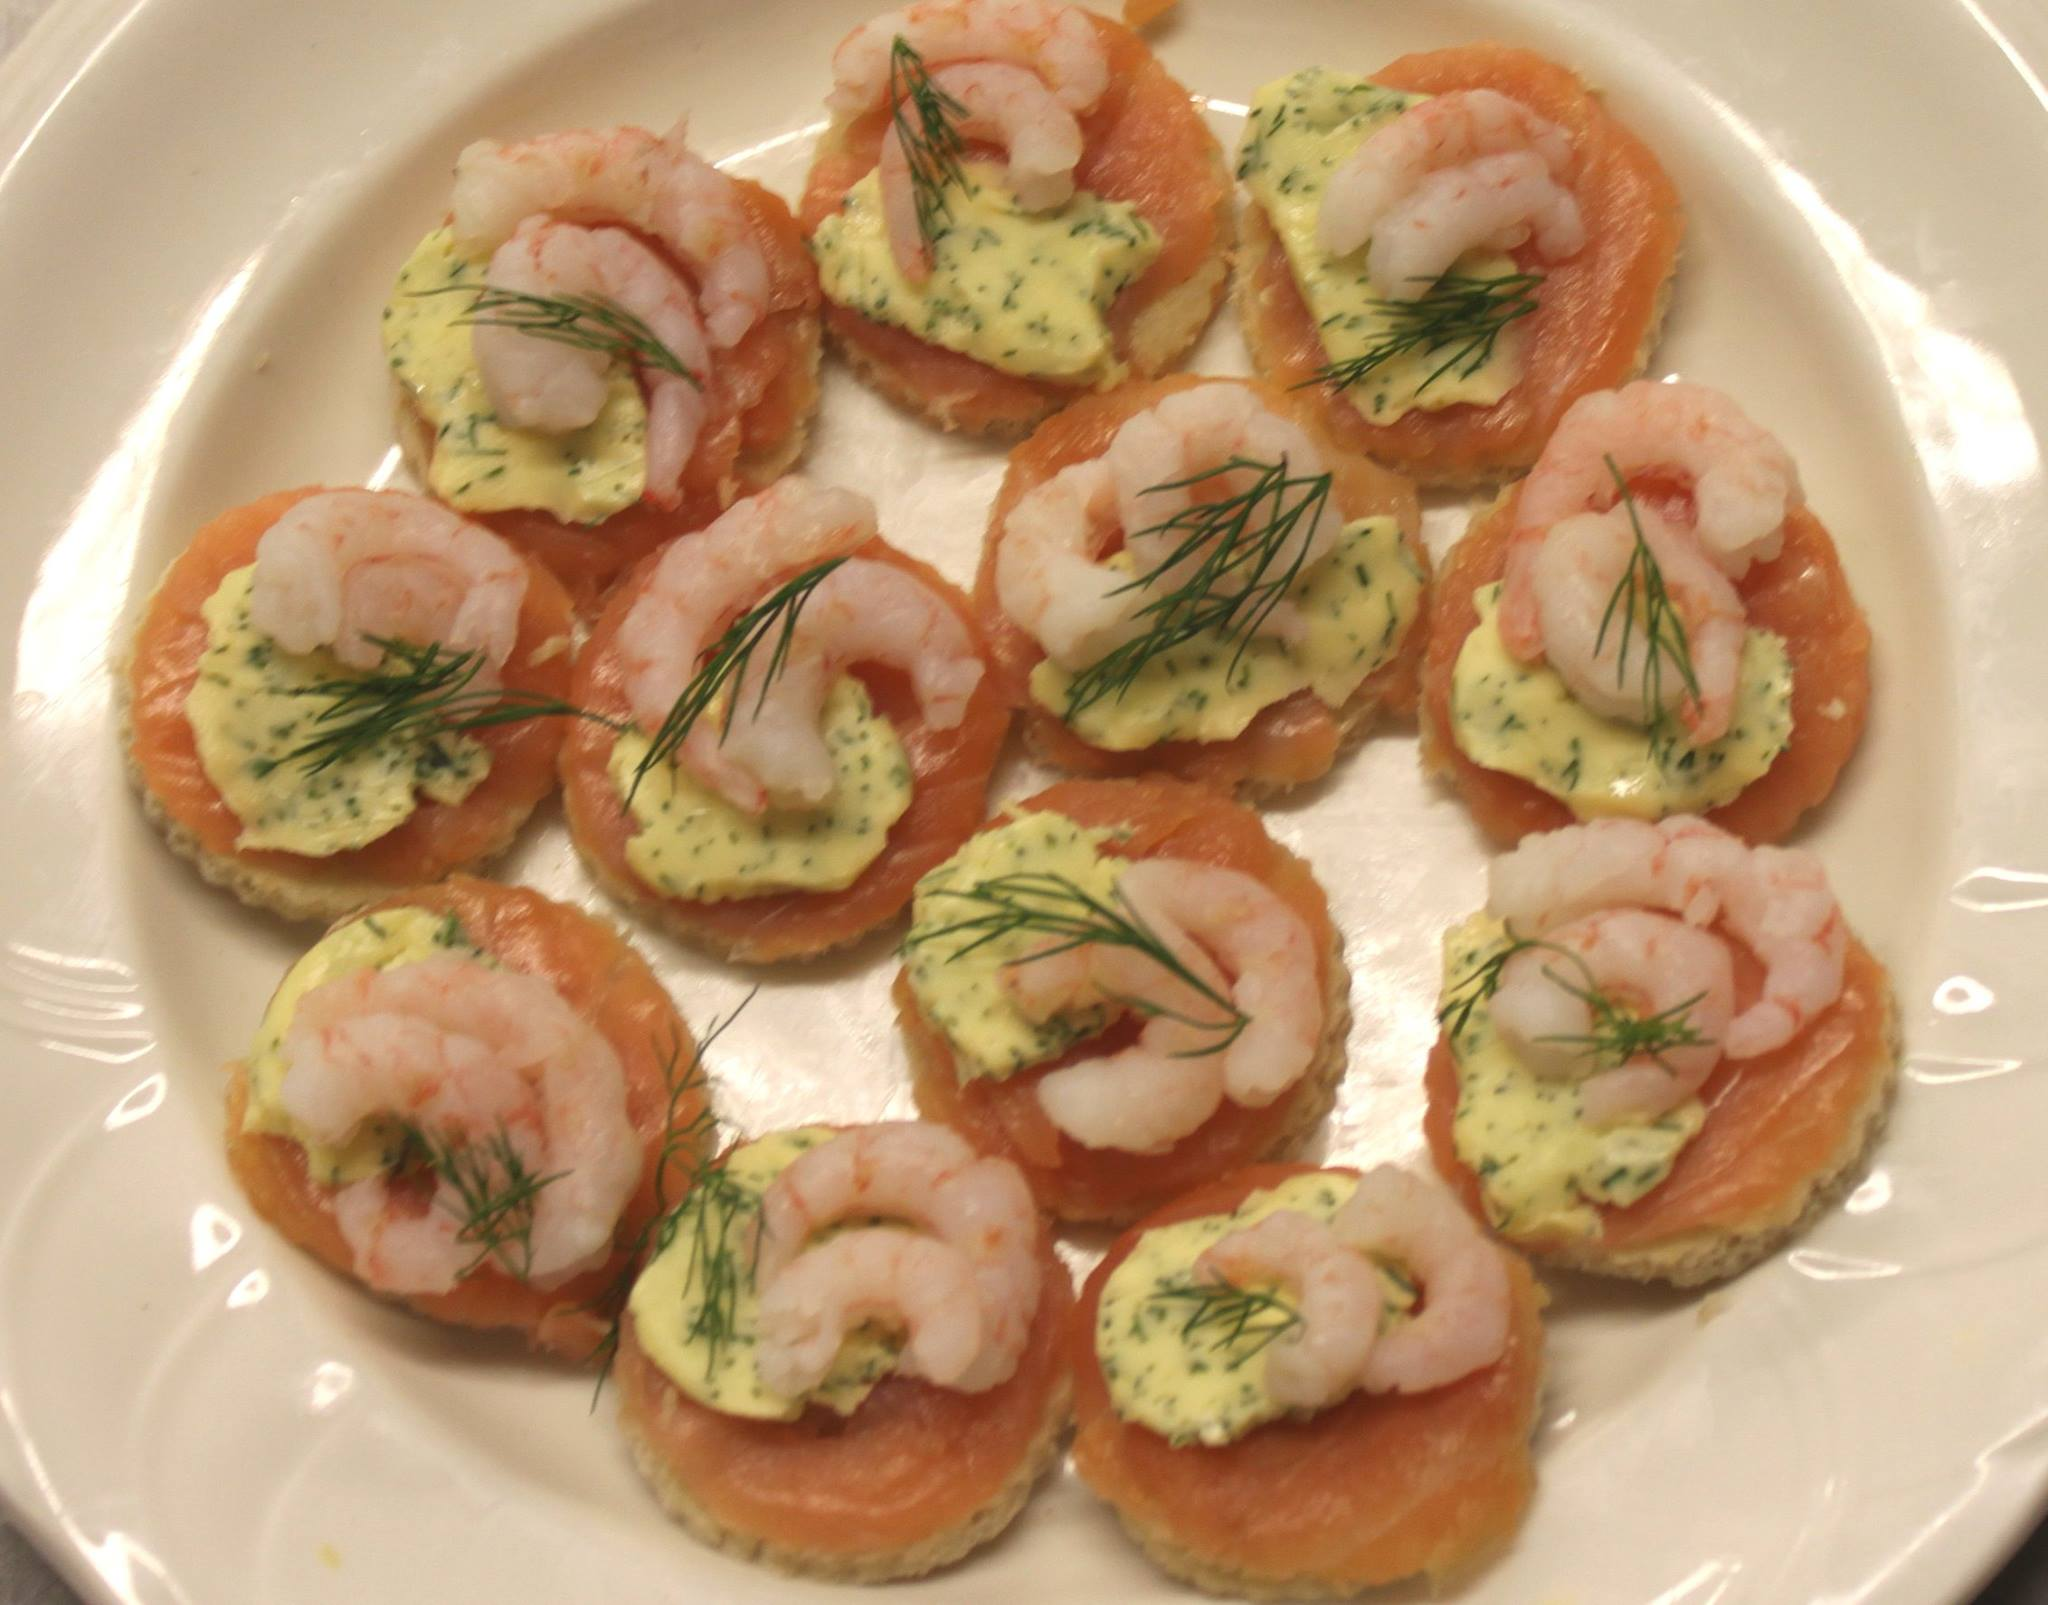 Smoked salmon and dill butter on a crouton canape.